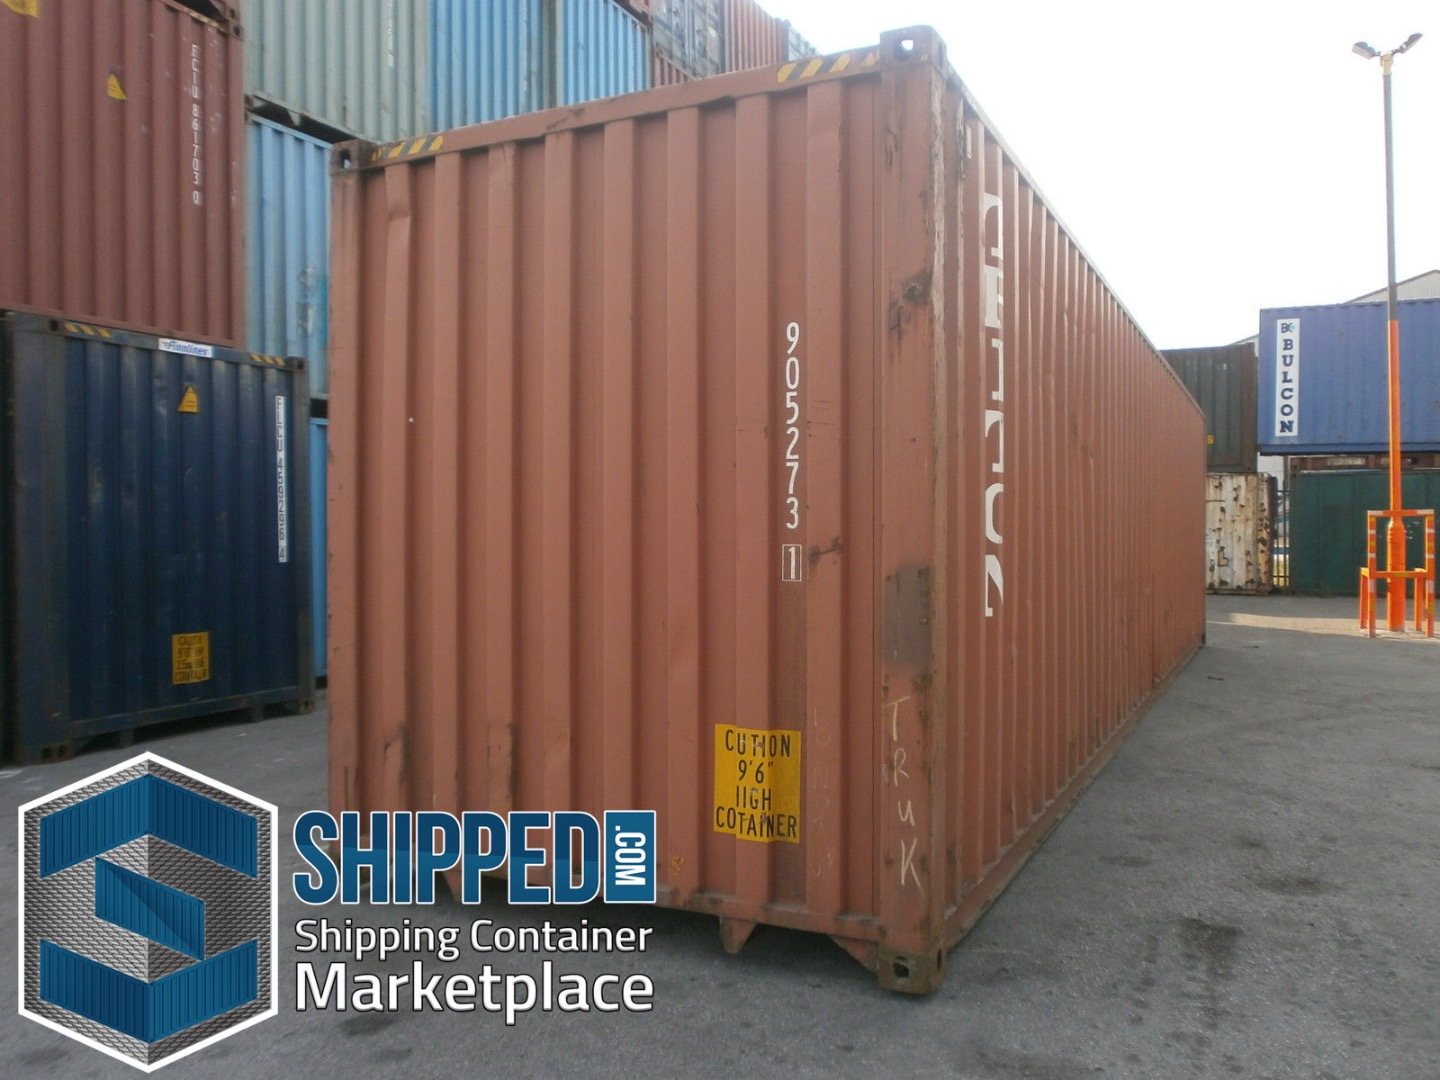 ITEM SPECIFICS: This listing is for one certified CSC plated 40 foot High  Cube Shipping Container is located in Miami, Florida. All components, such  as the ...